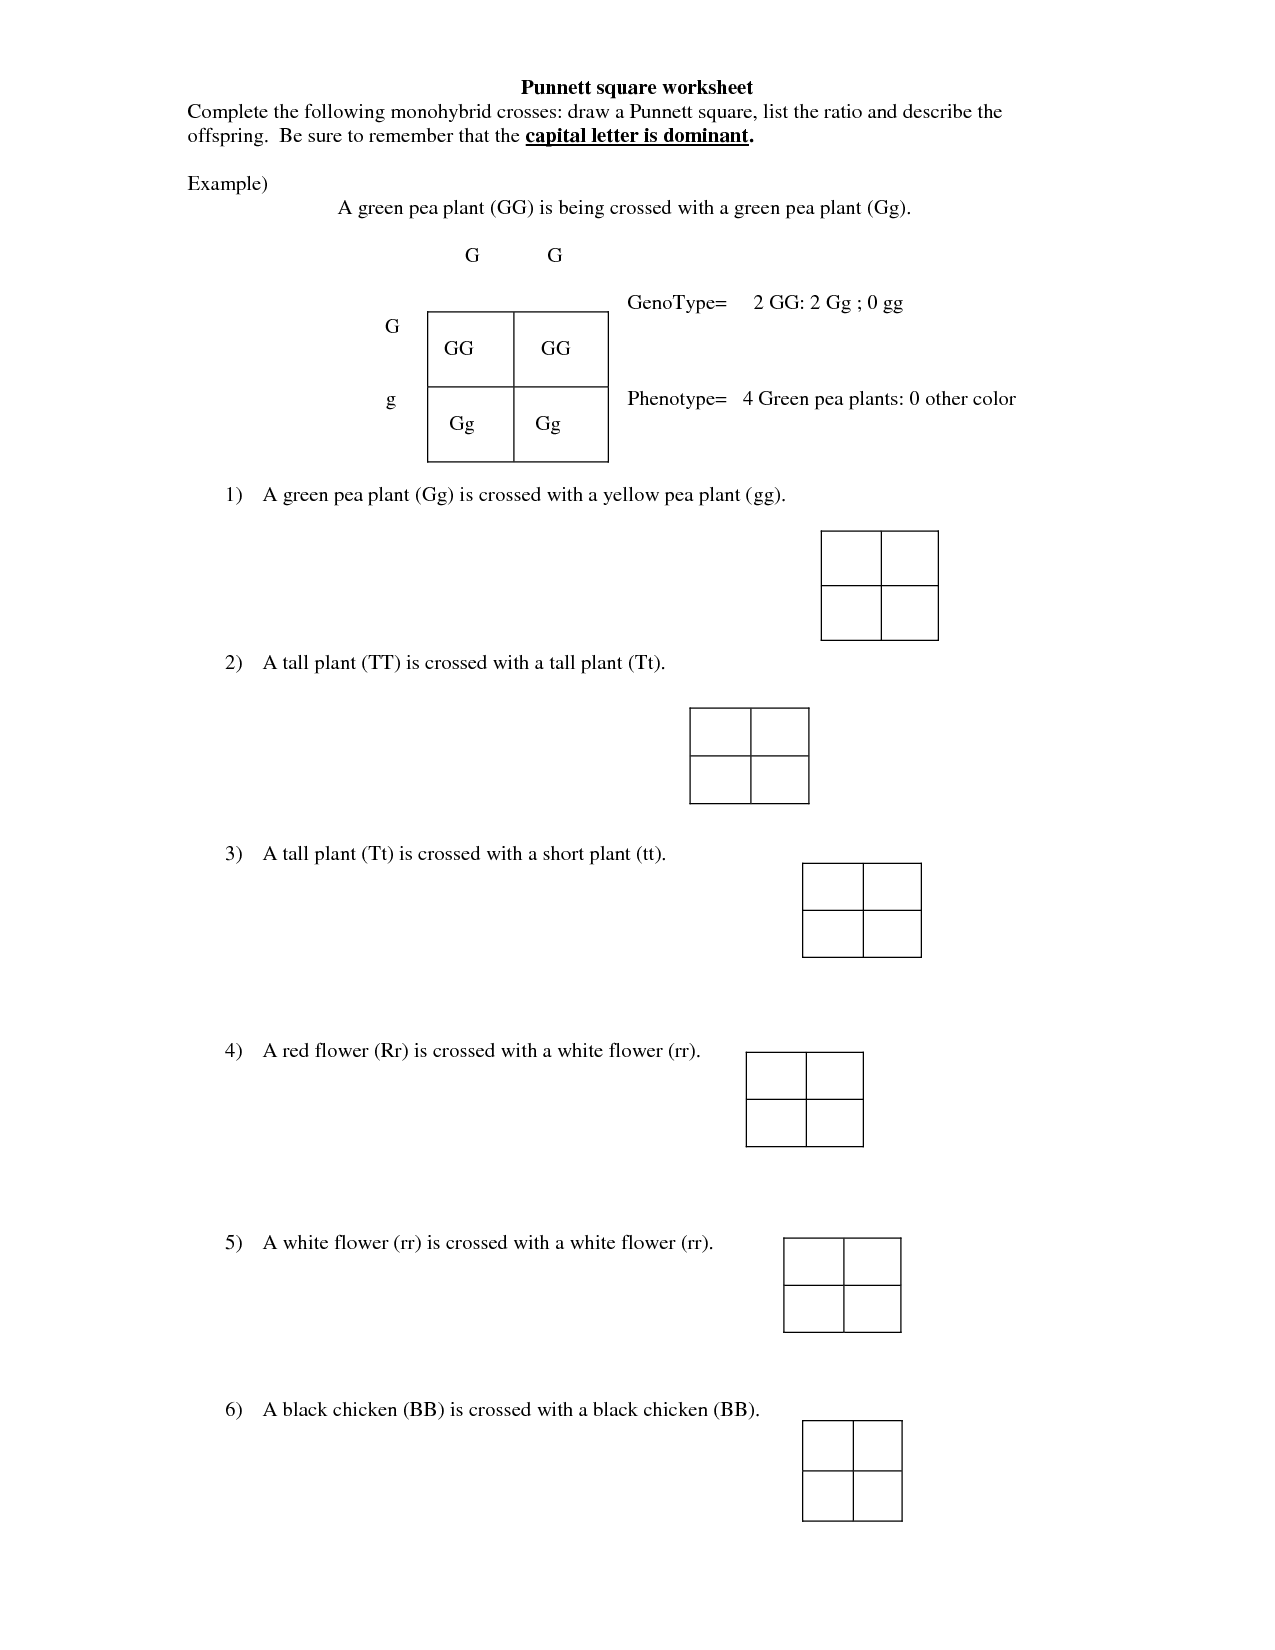 Polygenic Punnett Square Worksheet